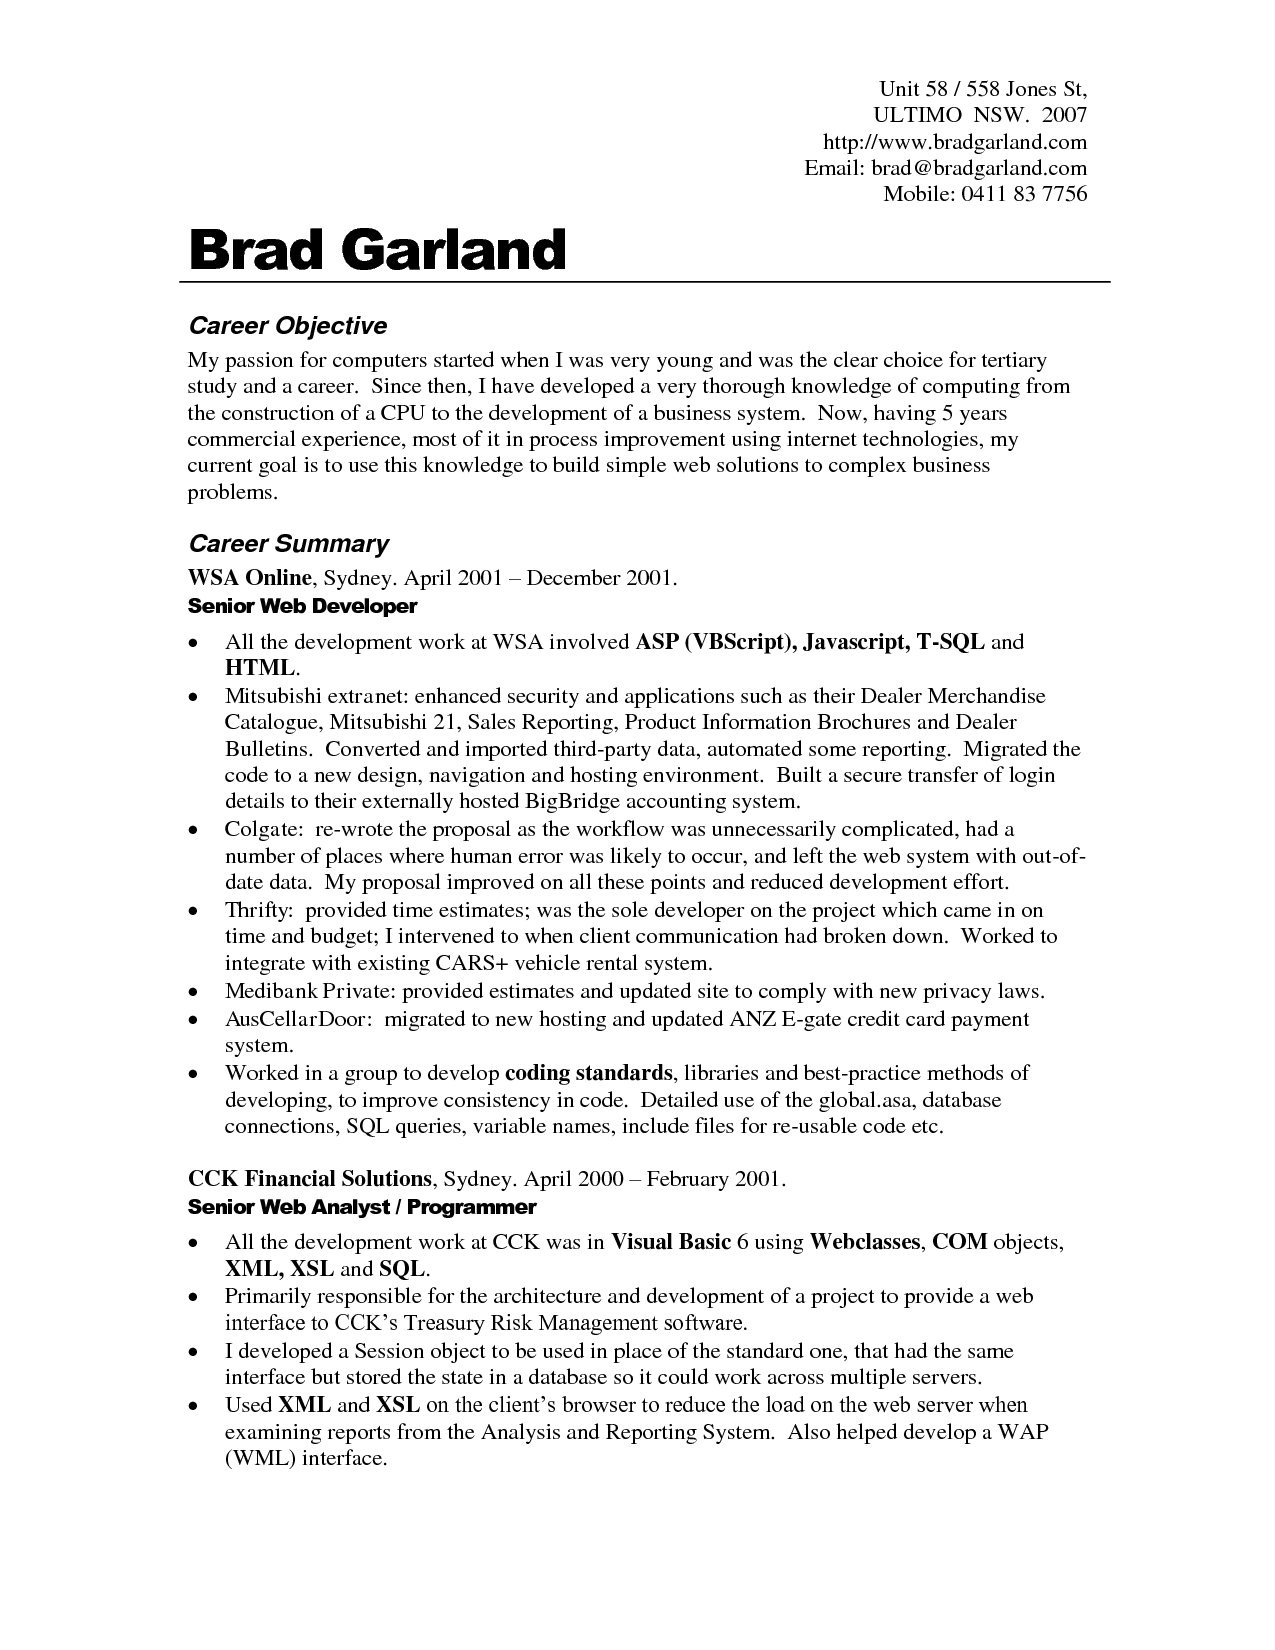 Resume Job Objective Examples Resume Objectives Examples Best Templateresume Objective Examples .